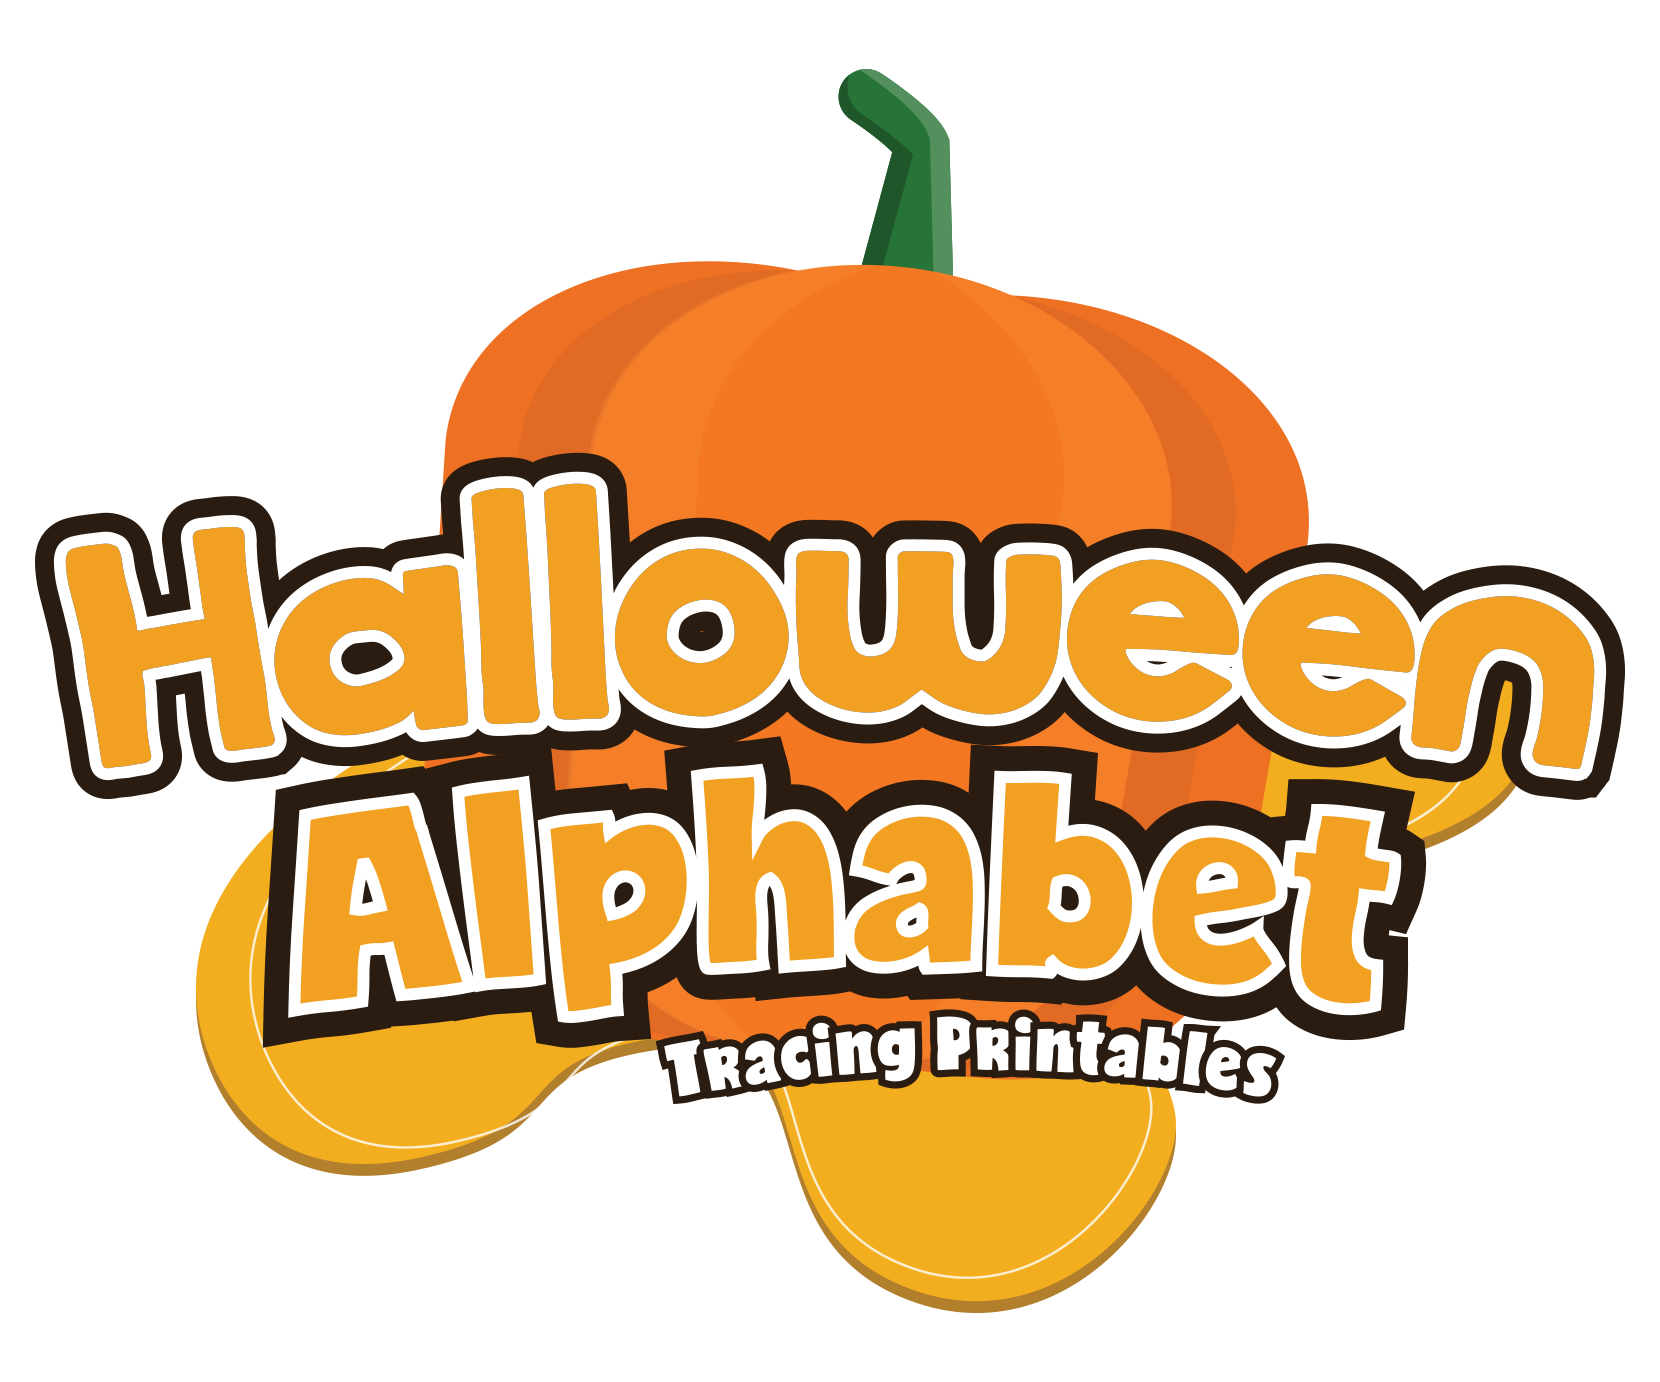 Halloween Alphabet Letter Tracing Pack For Preschoolers